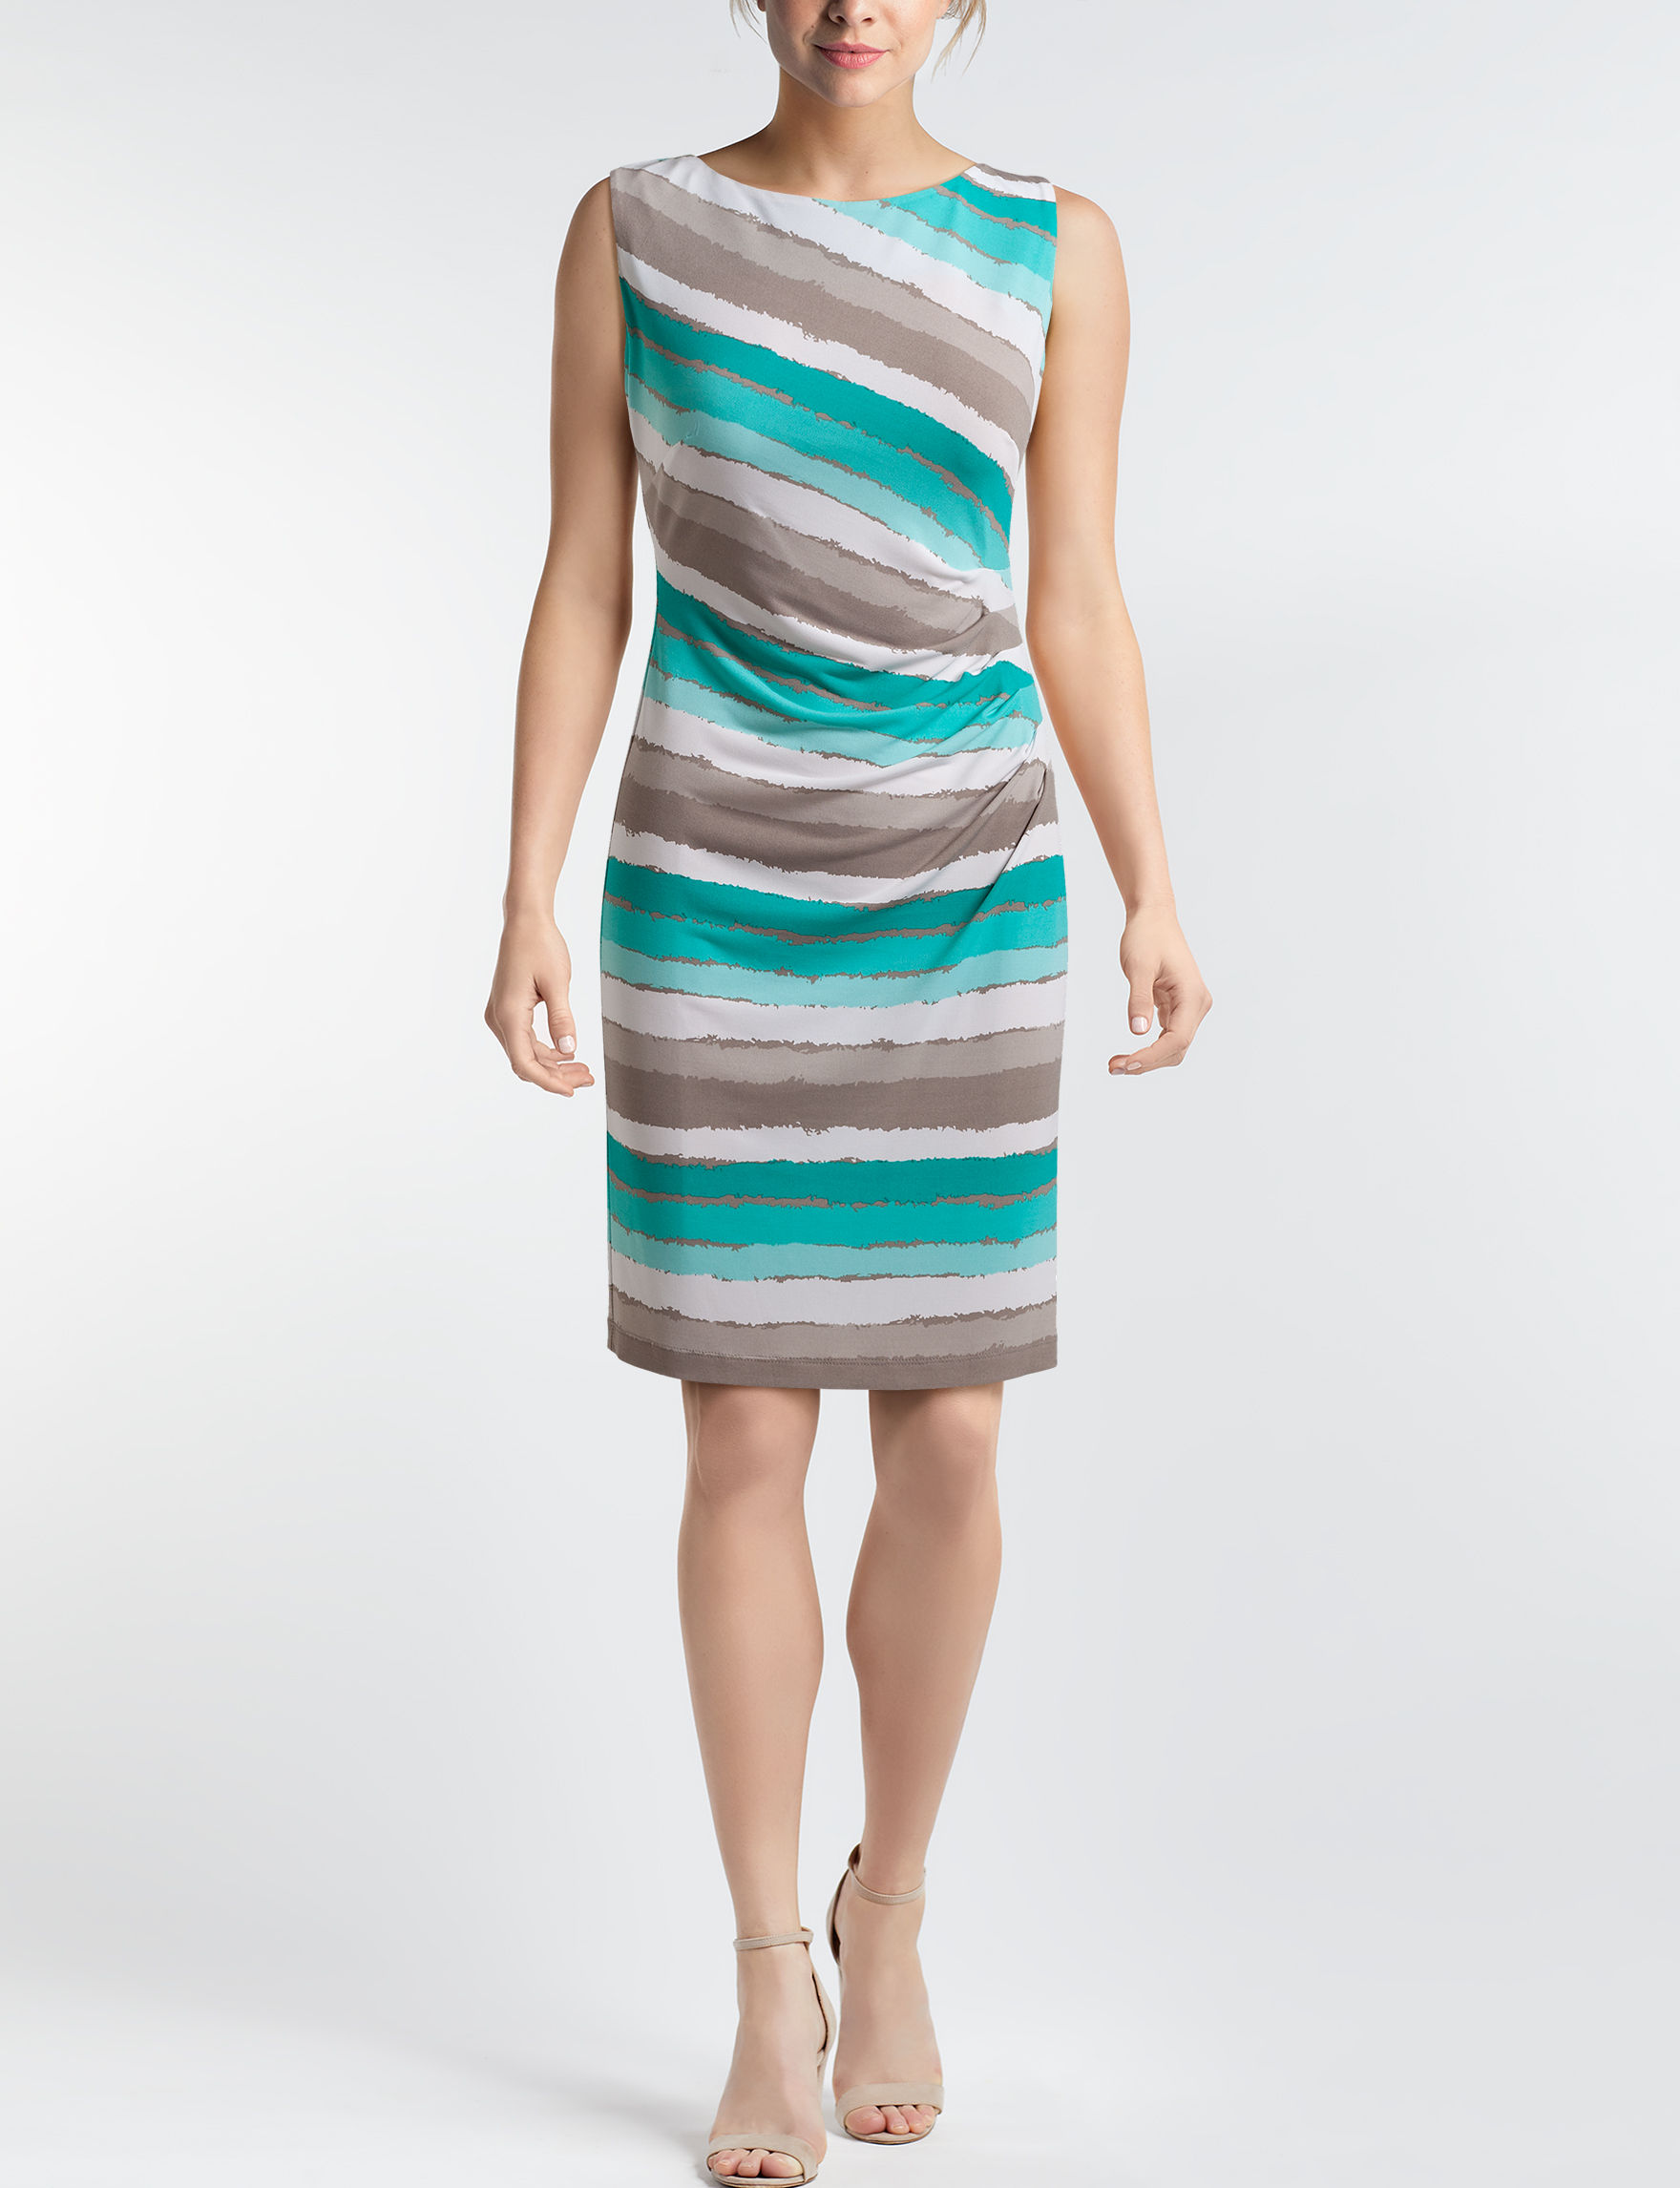 Connected Turquoise Everyday & Casual Sheath Dresses